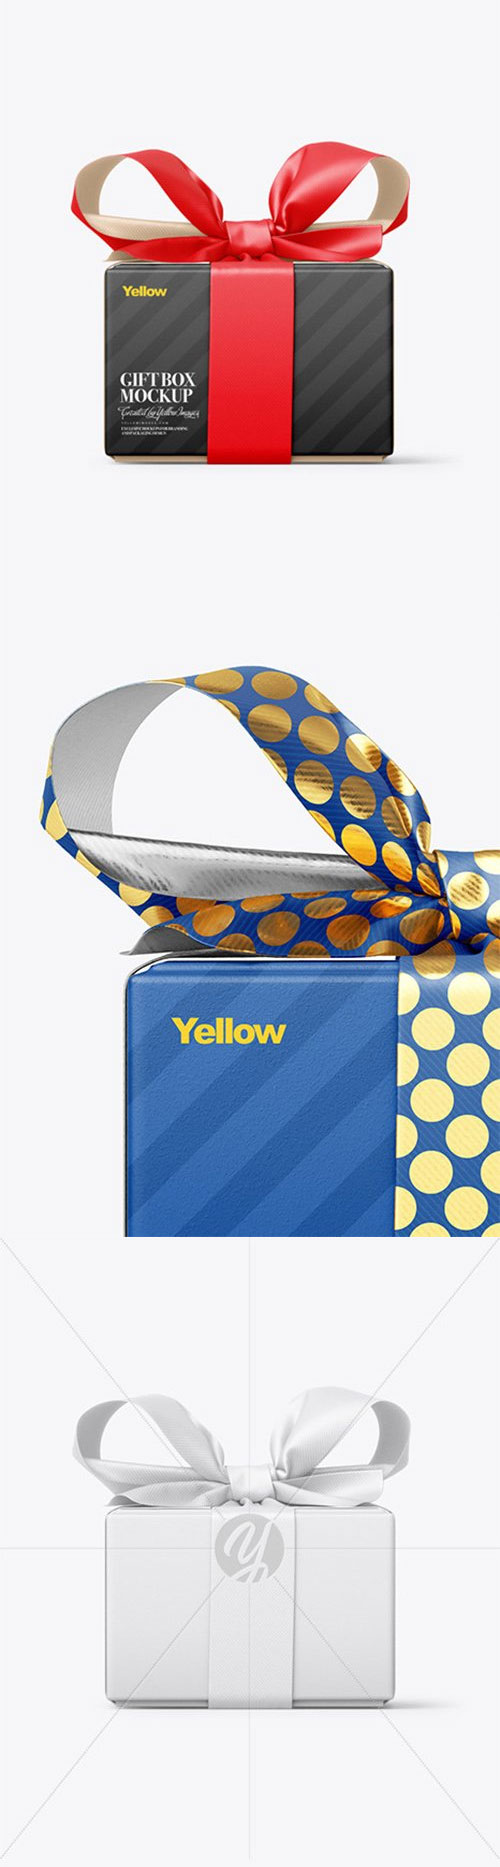 Gift Box With Matte Bow Mockup - Front View 78754